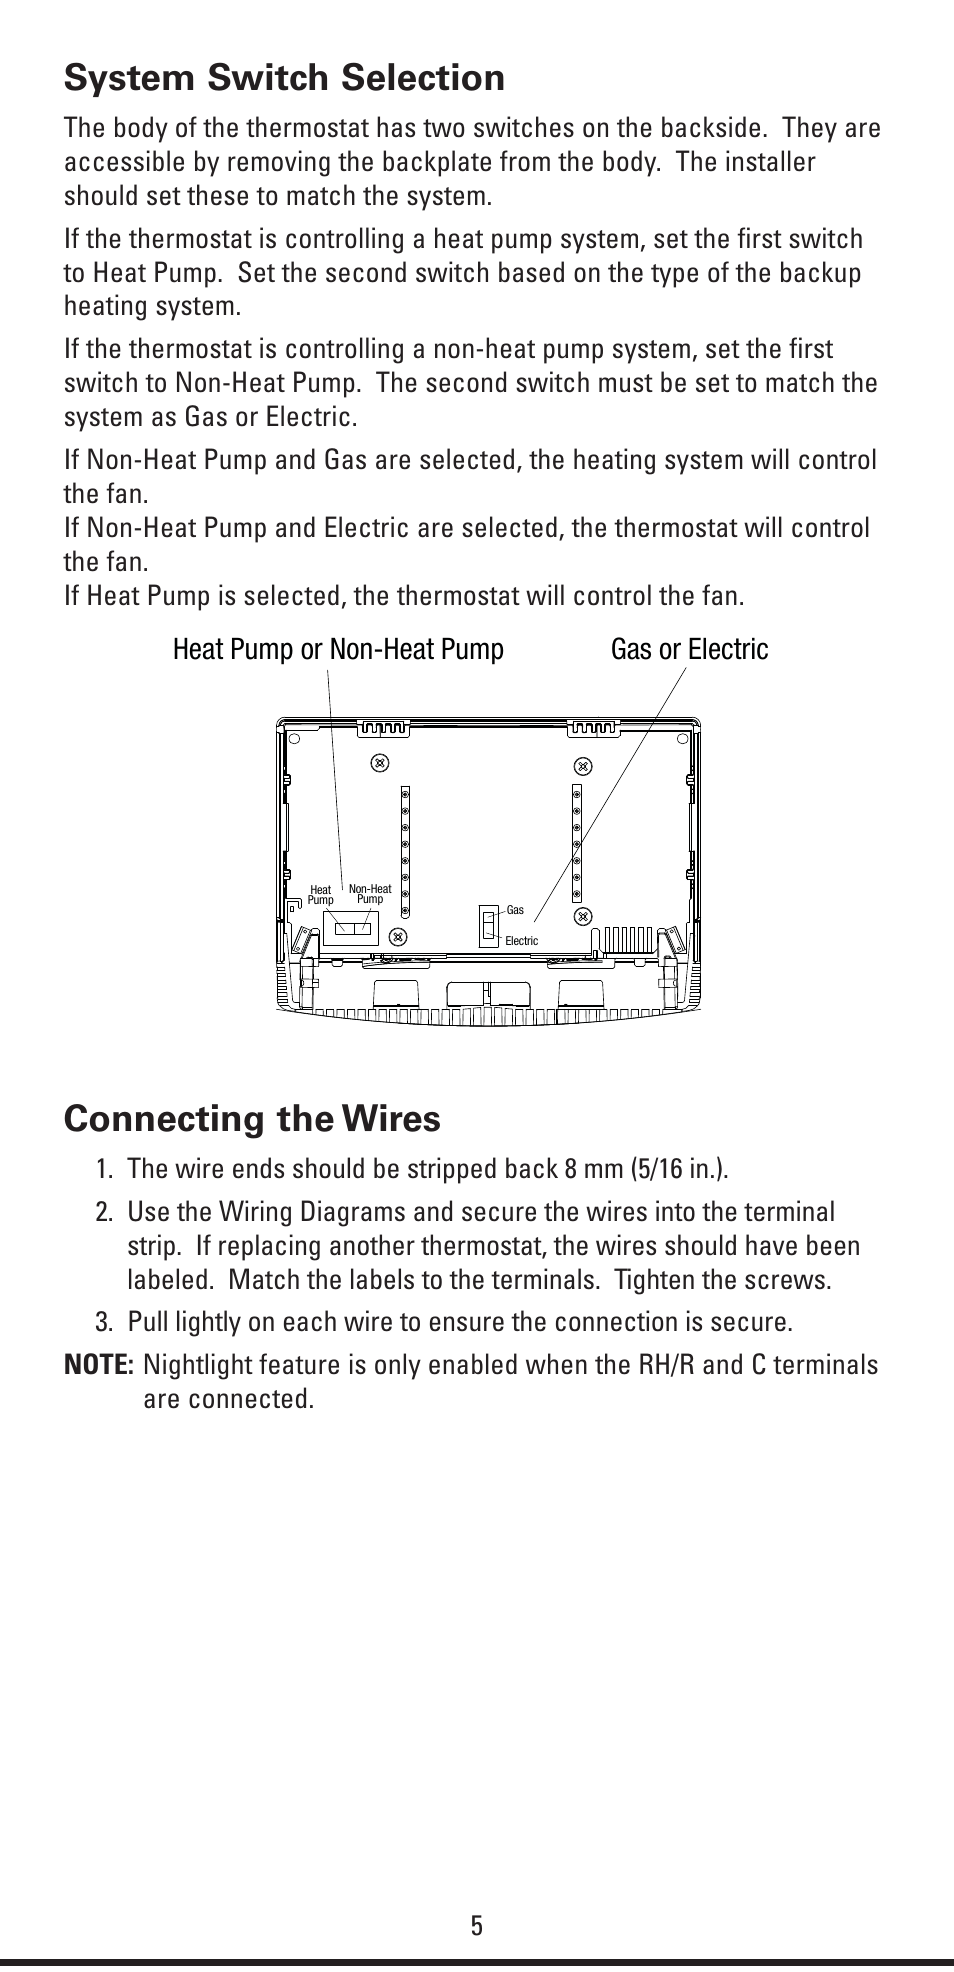 Robert Shaw Thermostat 5 Wire Diagram Guide And Troubleshooting Of Ac Wiring Colors System Switch Selection Connecting The Wires Heat Pump Or Non Rh Manualsdir Com 4